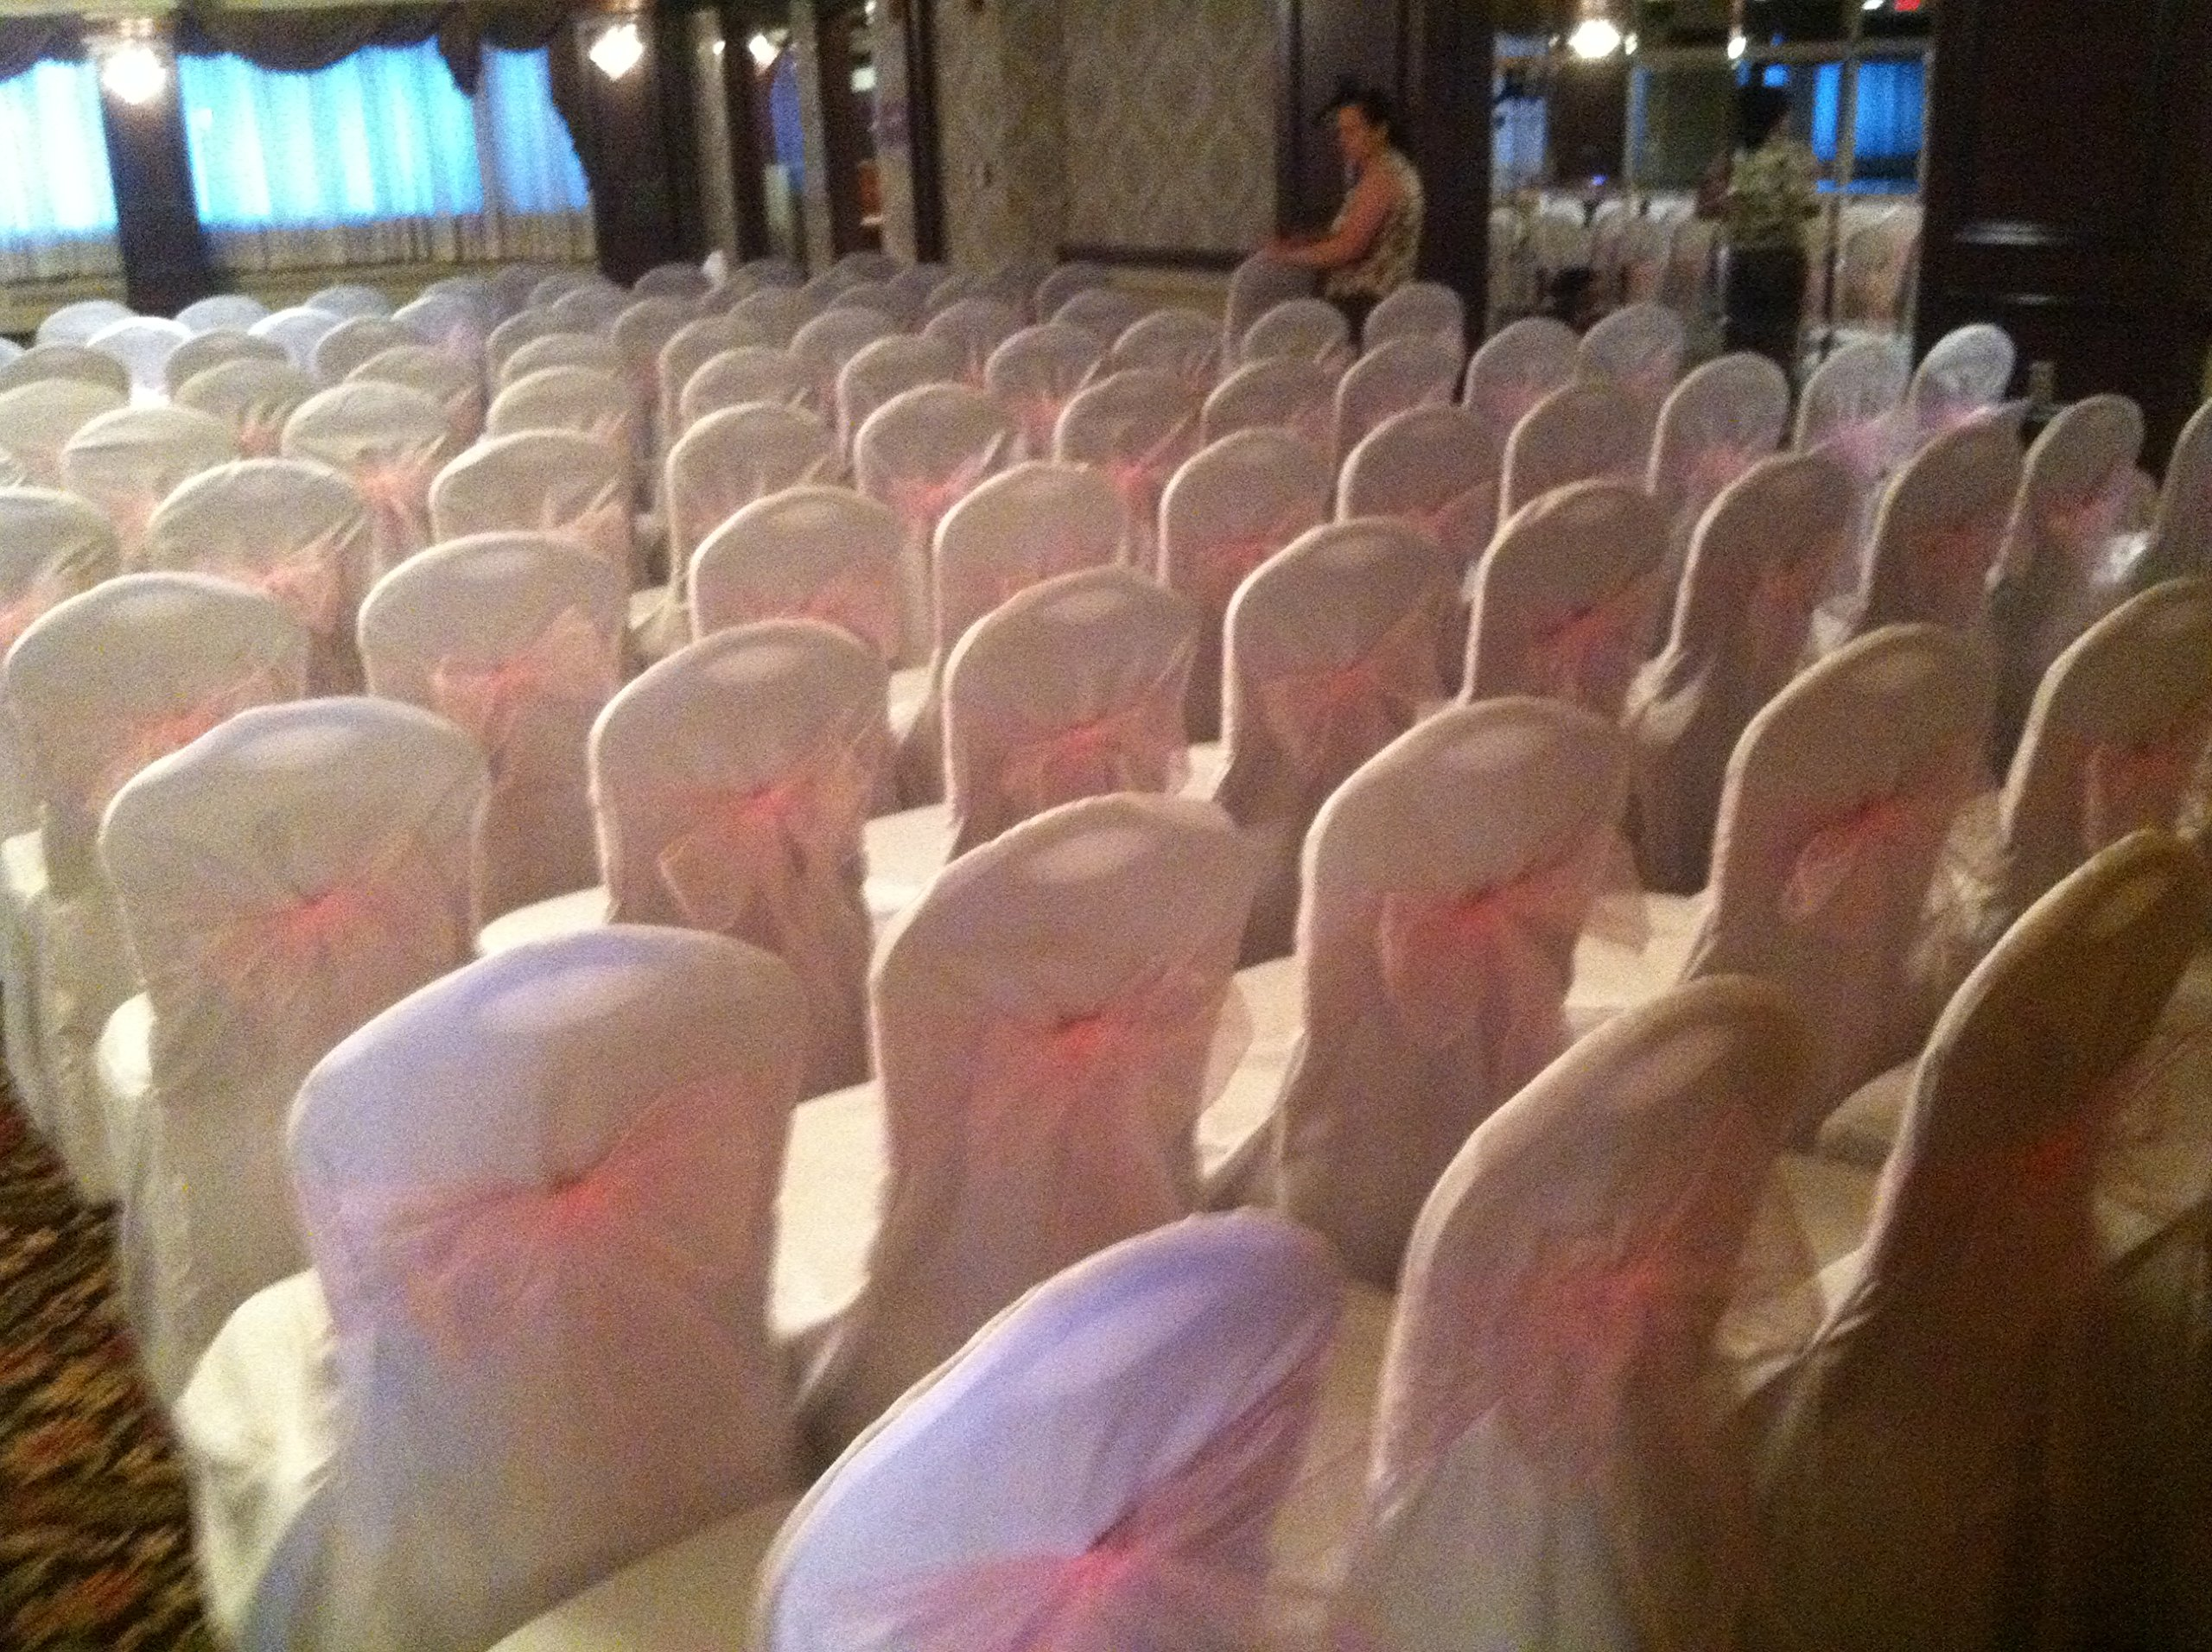 White Wedding Round Top Banquet Chair Covers-(set of 100) by Crazy Lights